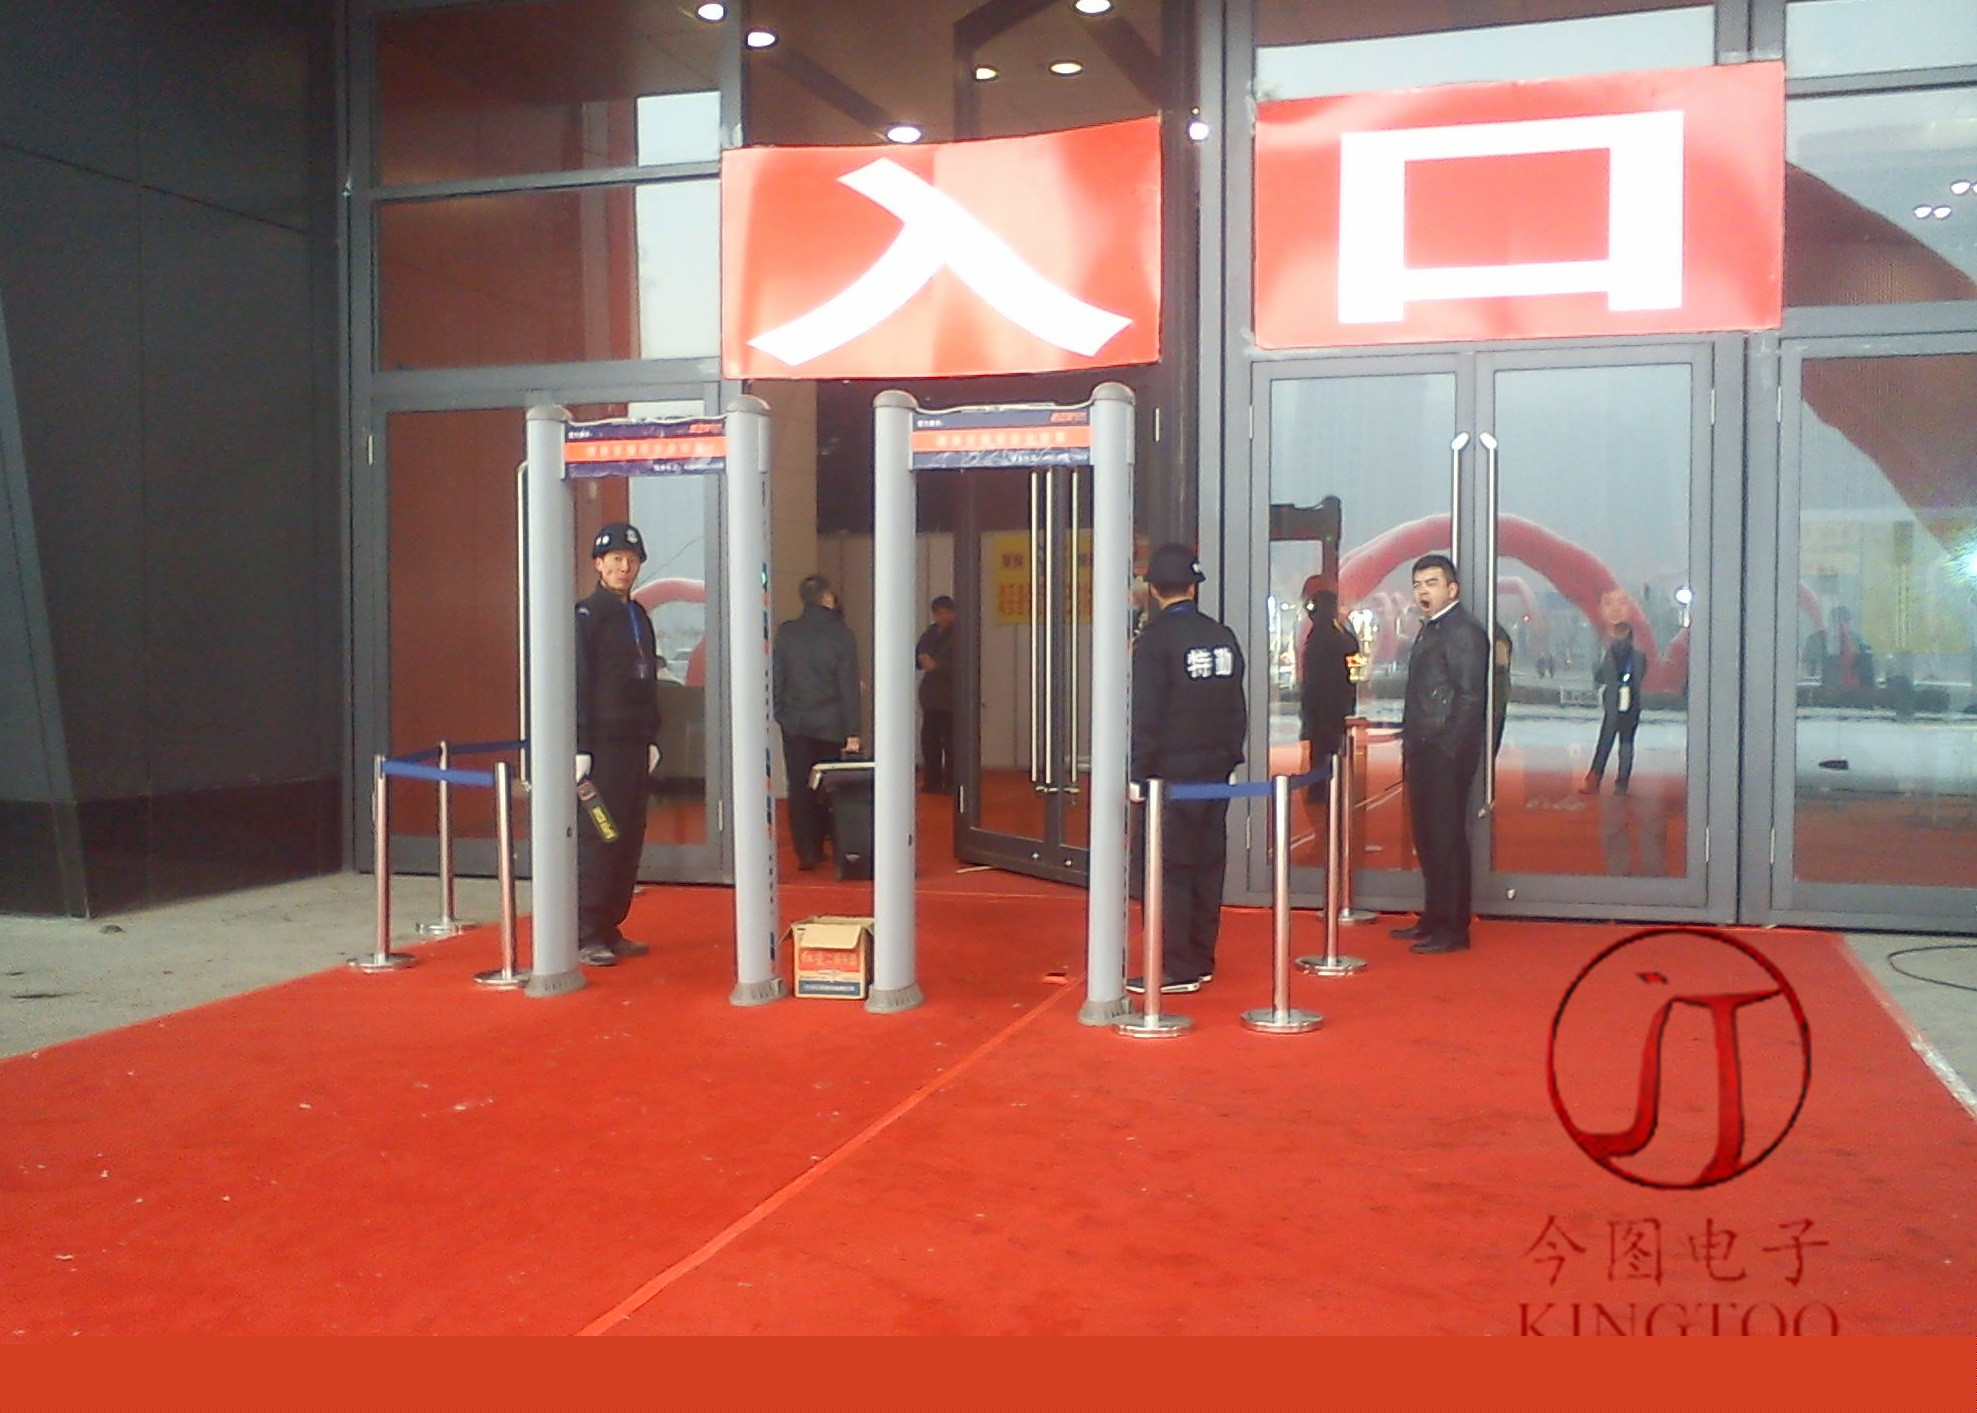 This figure security door debut in 2016 Dalian International Import Commodities Exhibition